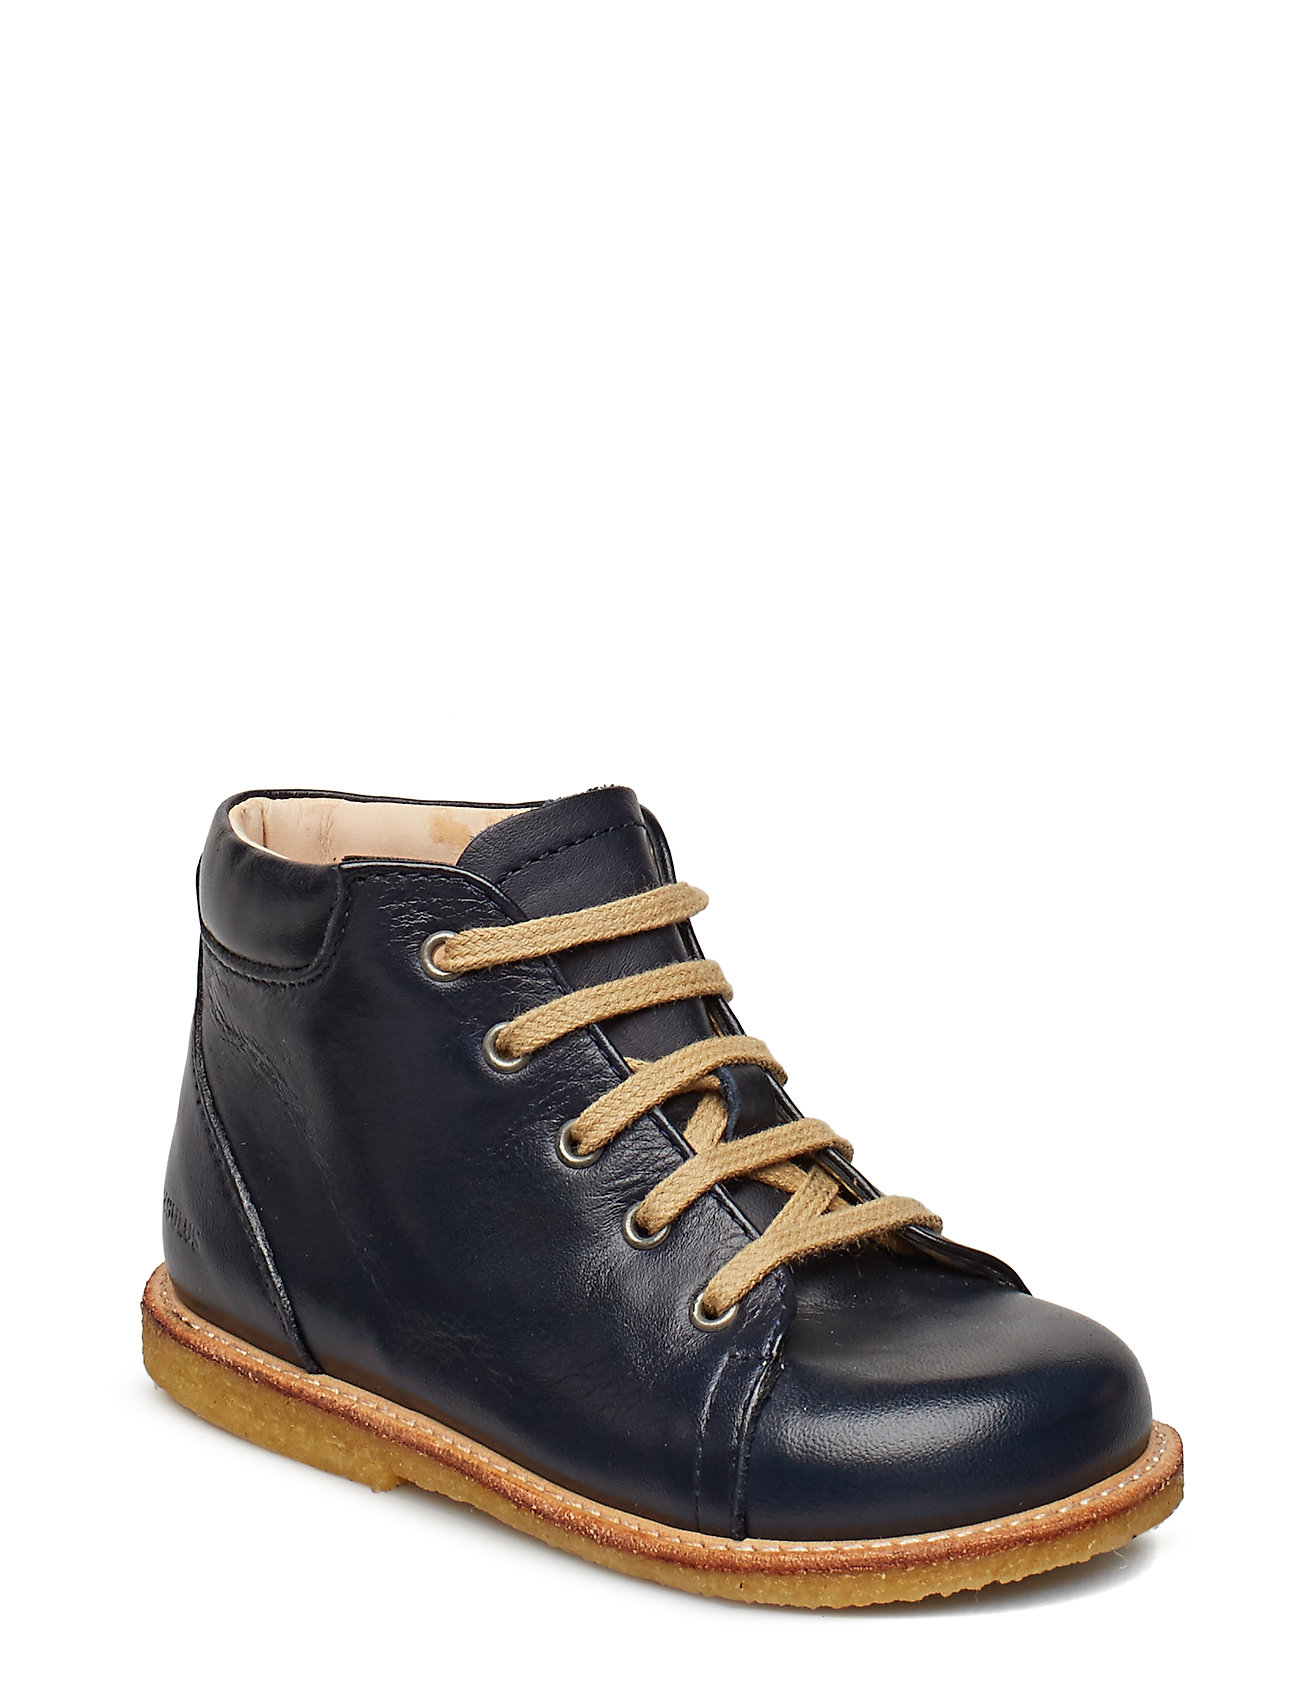 ANGULUS Boots - flat - with laces